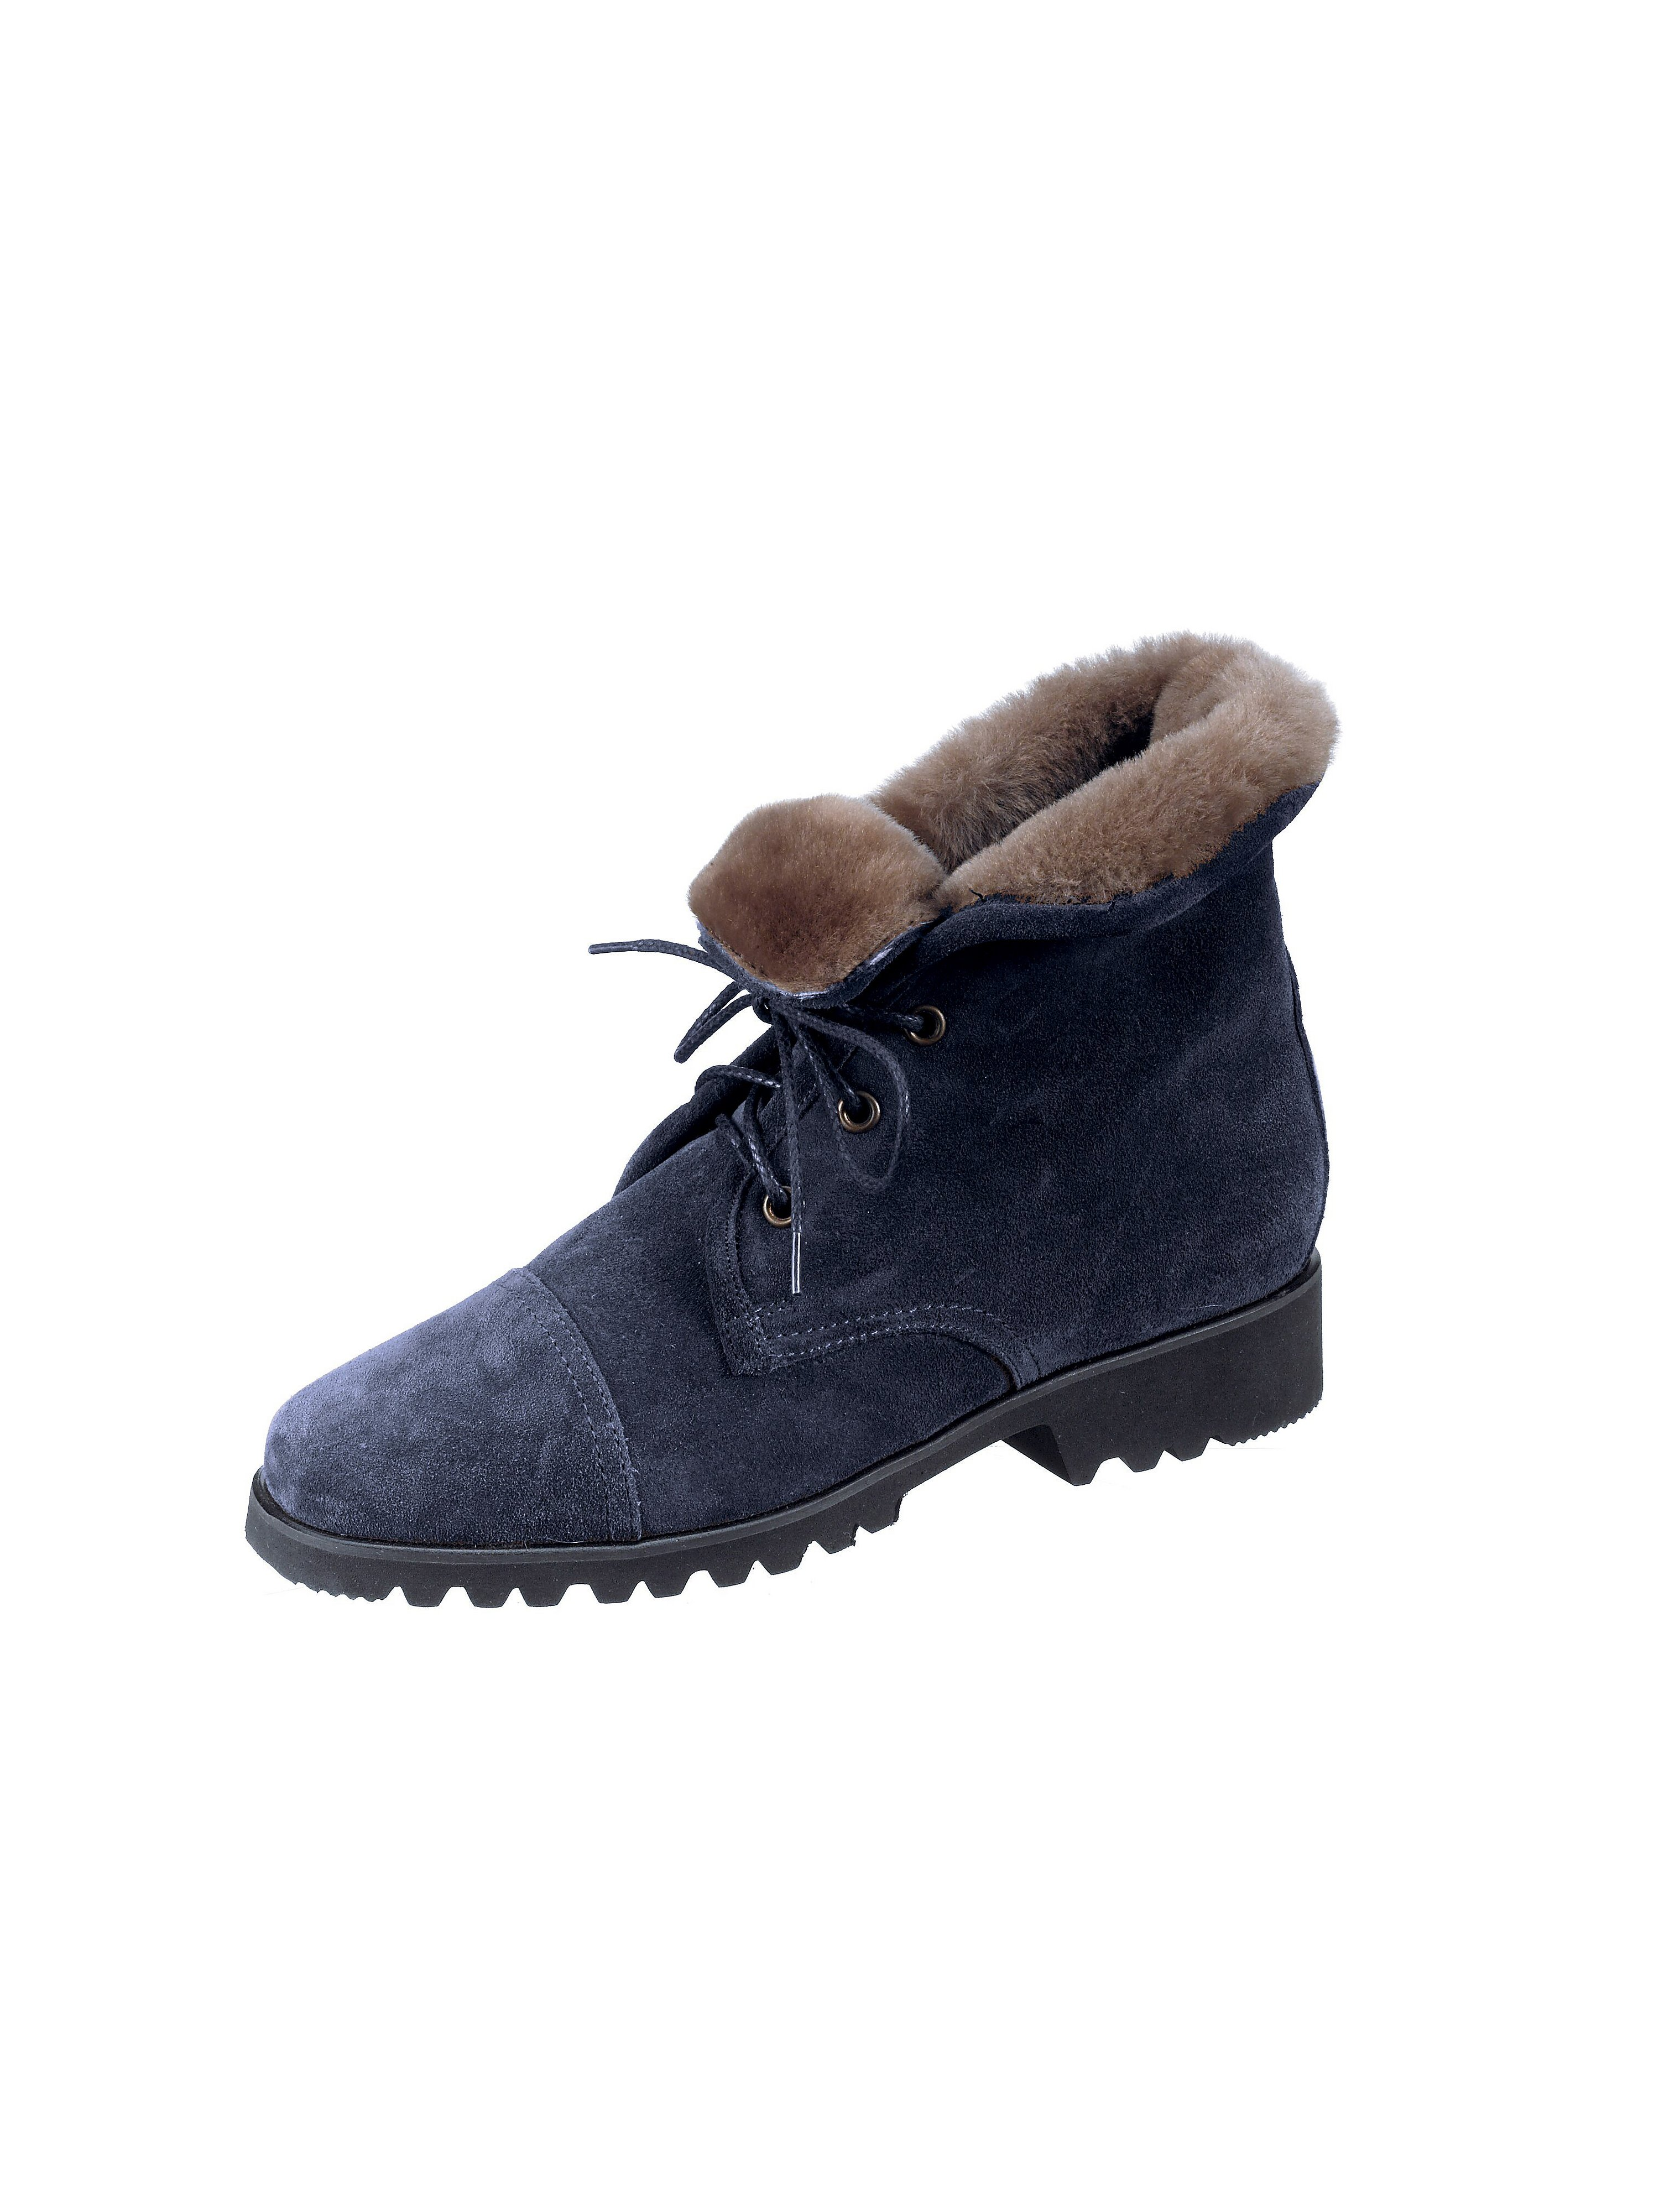 Les bottines  Peter Hahn exquisit bleu taille 39